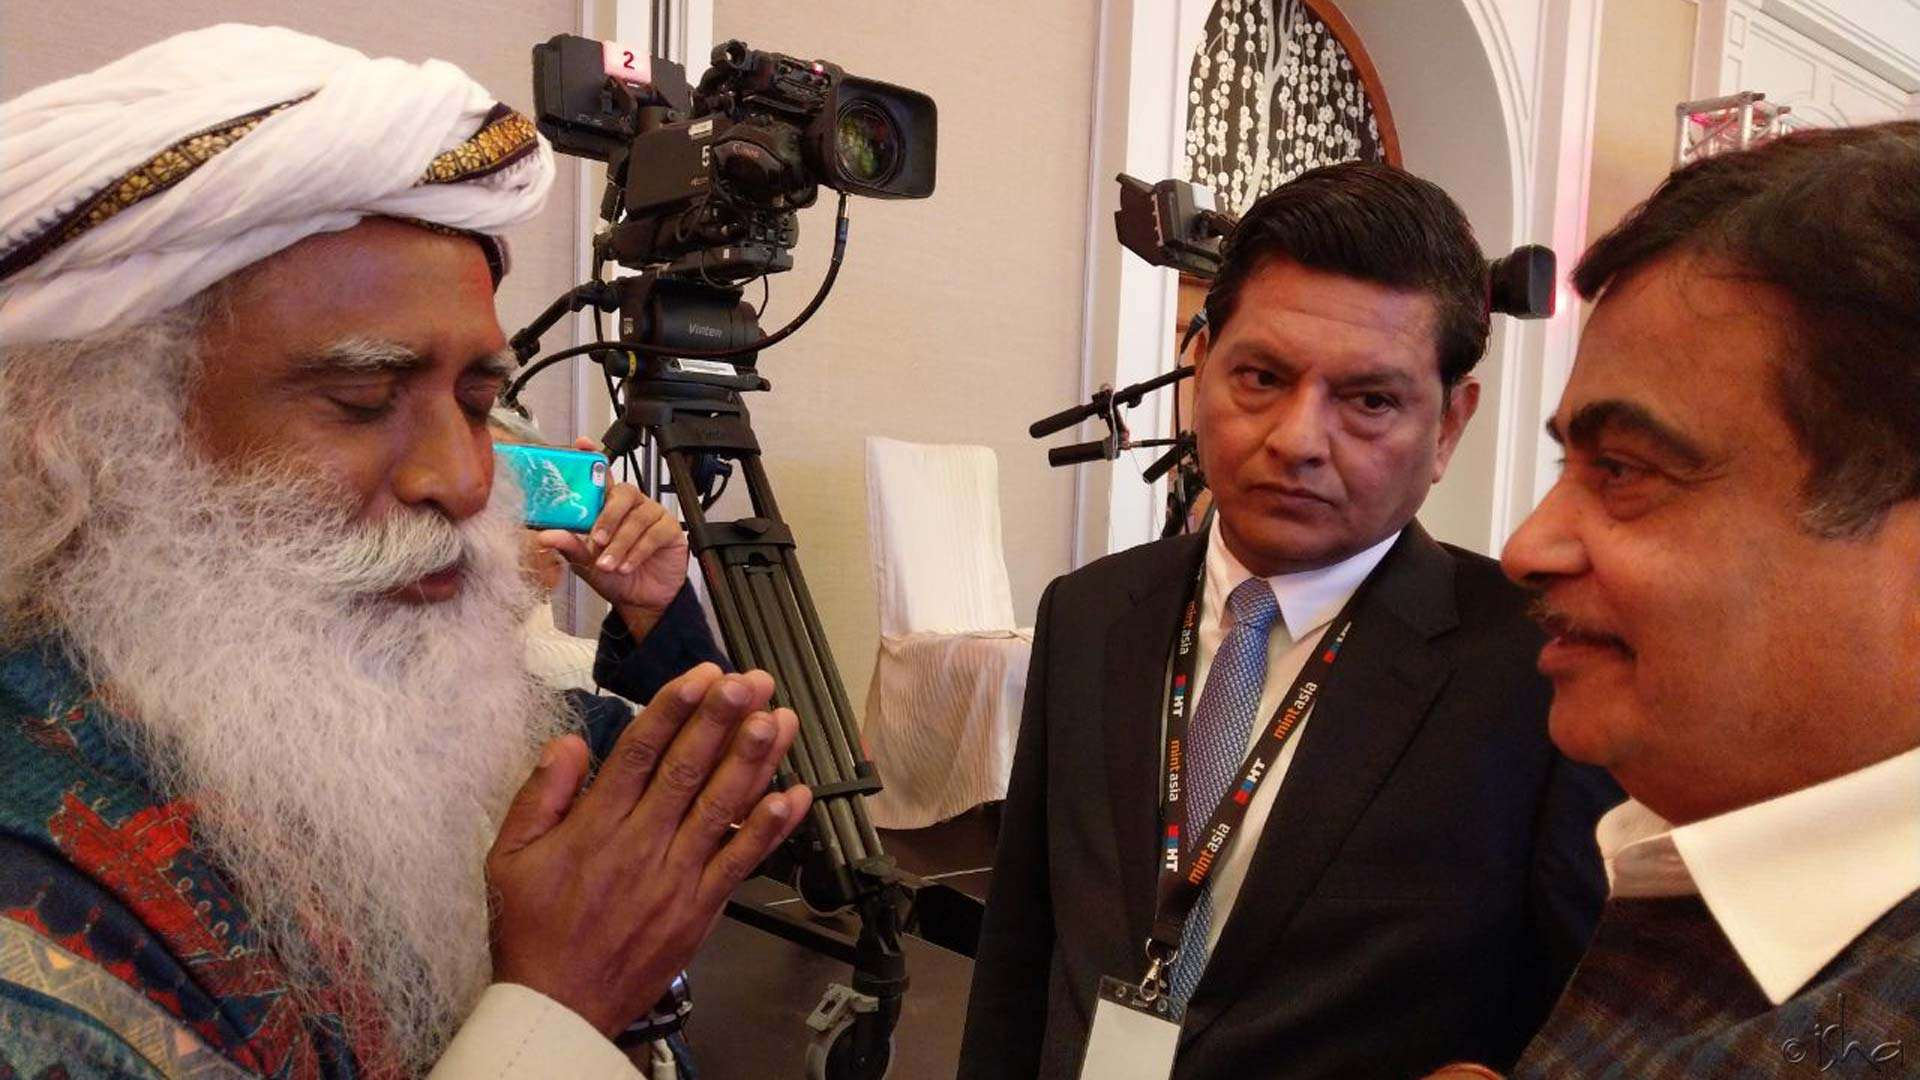 Sadhguru with Nitin Gadkari, Union Minister for Transport, Water Resources, and River Development